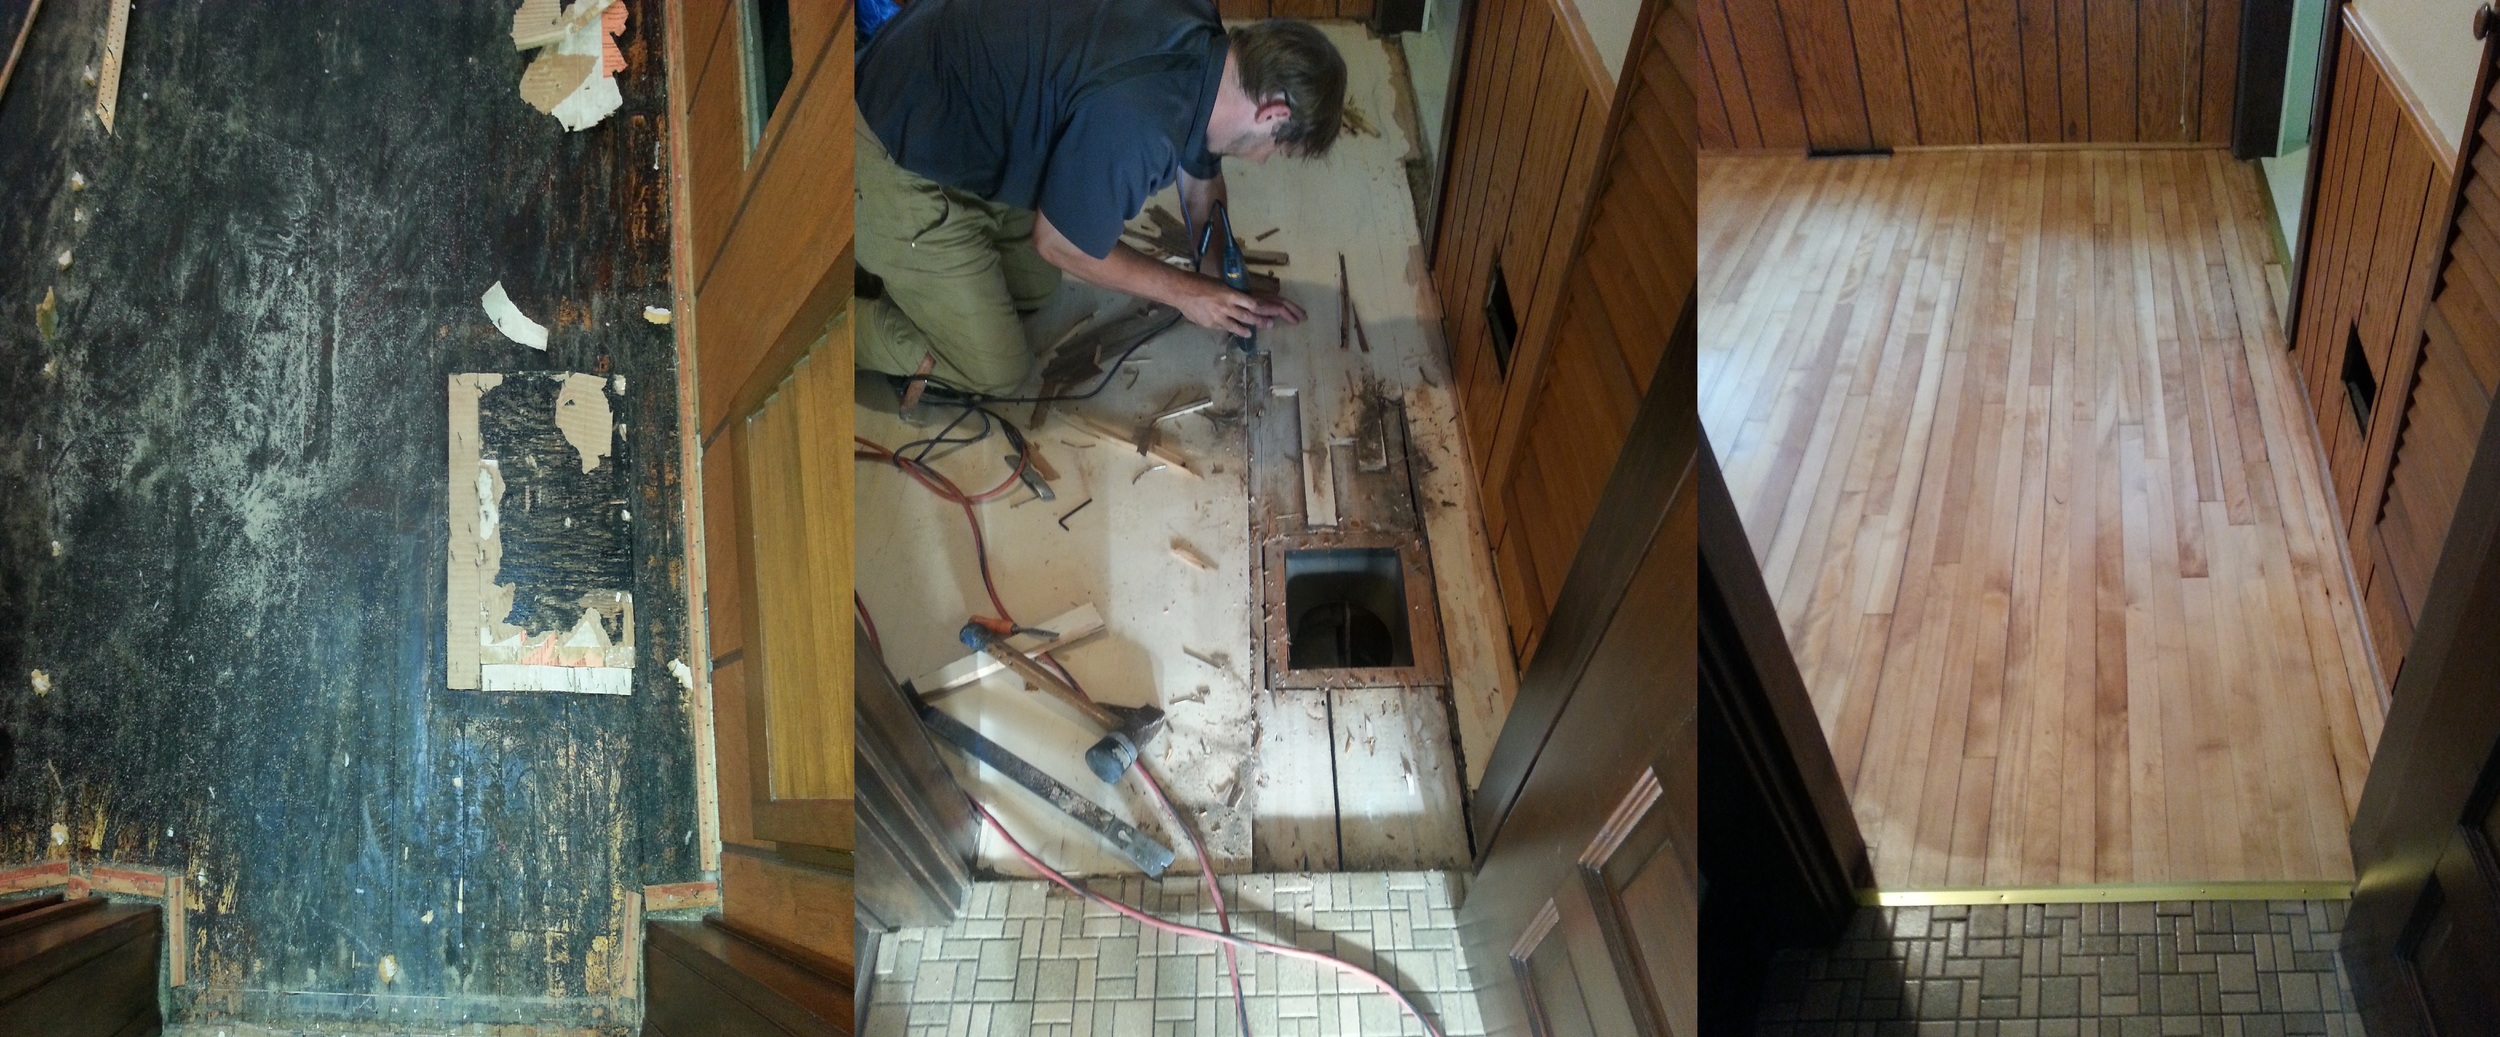 Repair and restoration of a maple floor damaged by carpet glue.